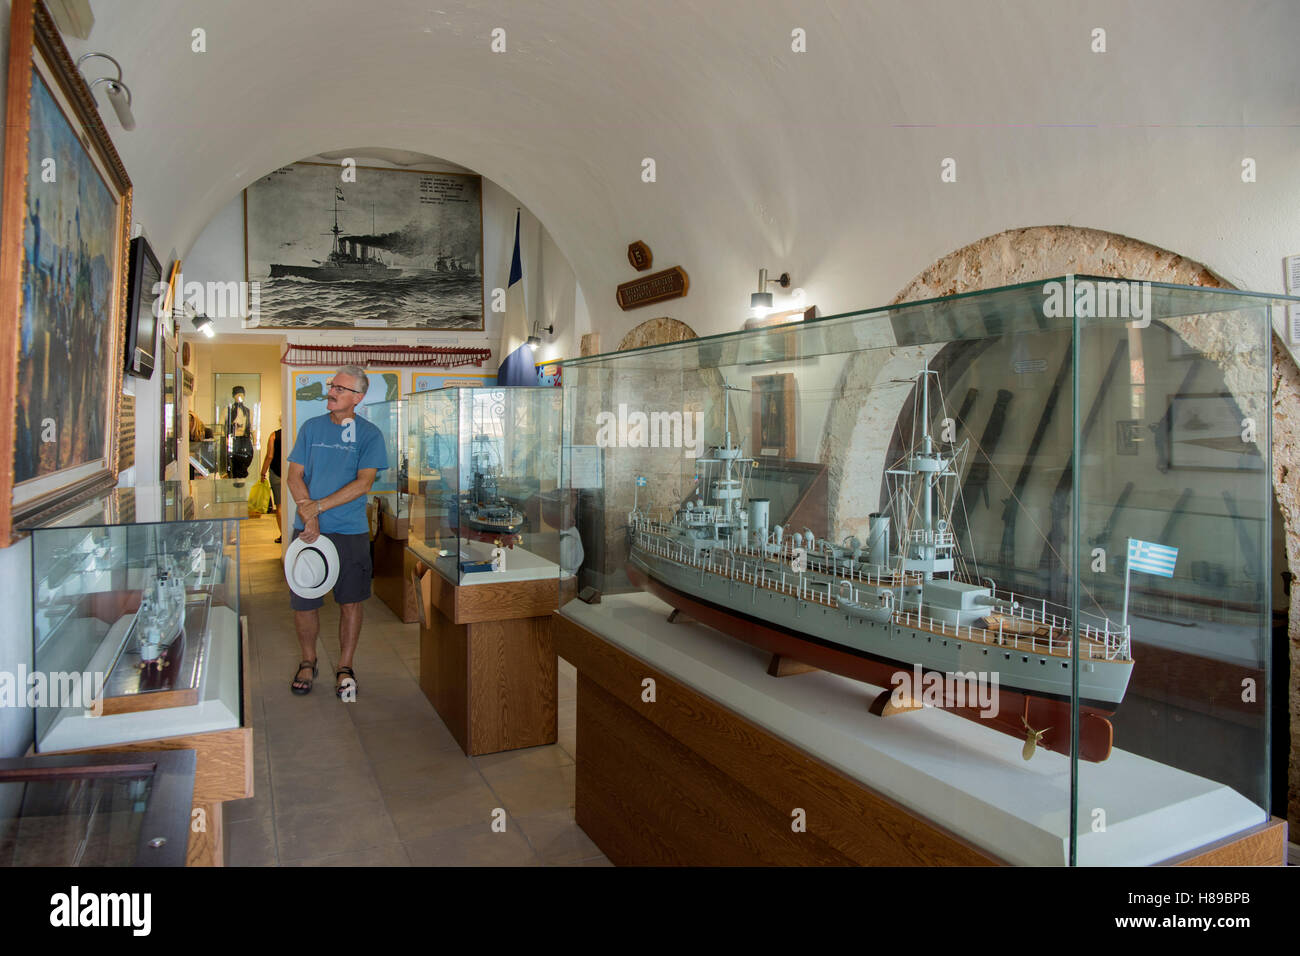 Griechenland, Kreta, Chania, Marine Museum Stock Photo